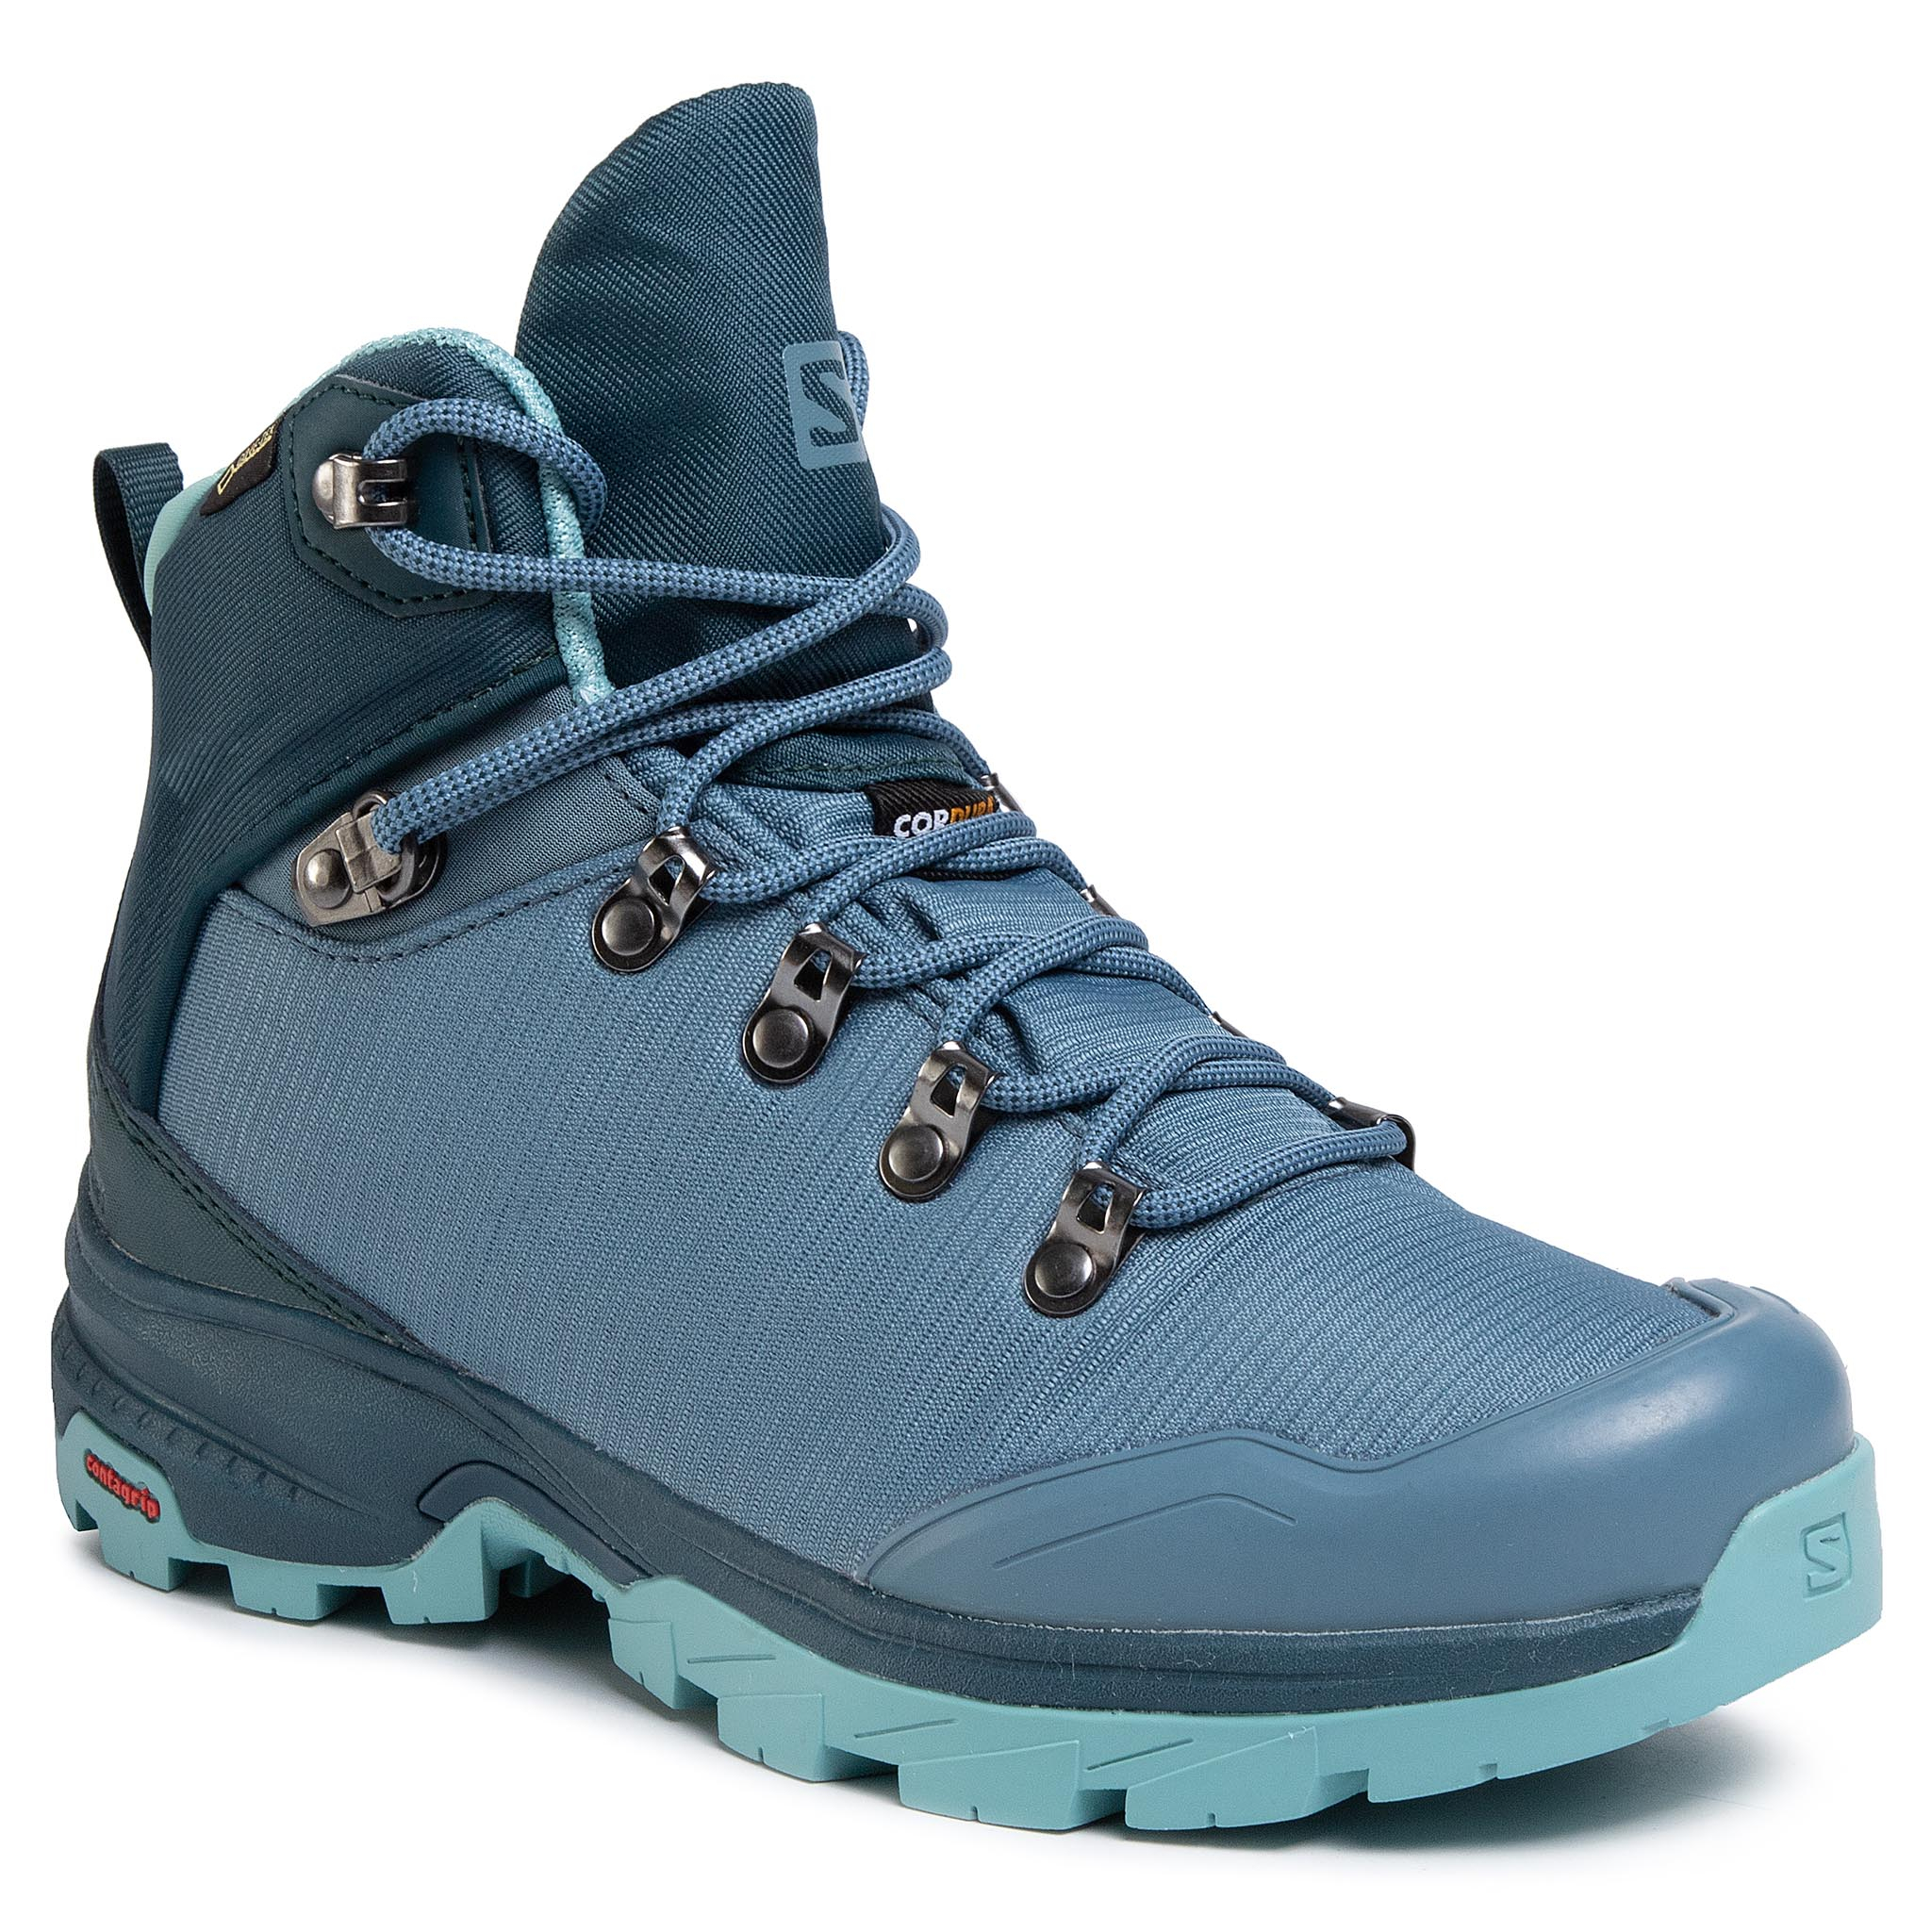 Trekkings Salomon - Outback 500 Gtx W Gore-Tex 406930 20 G0 Bluestone/Reflecting Pond/Nile Blue imagine epantofi.ro 2021